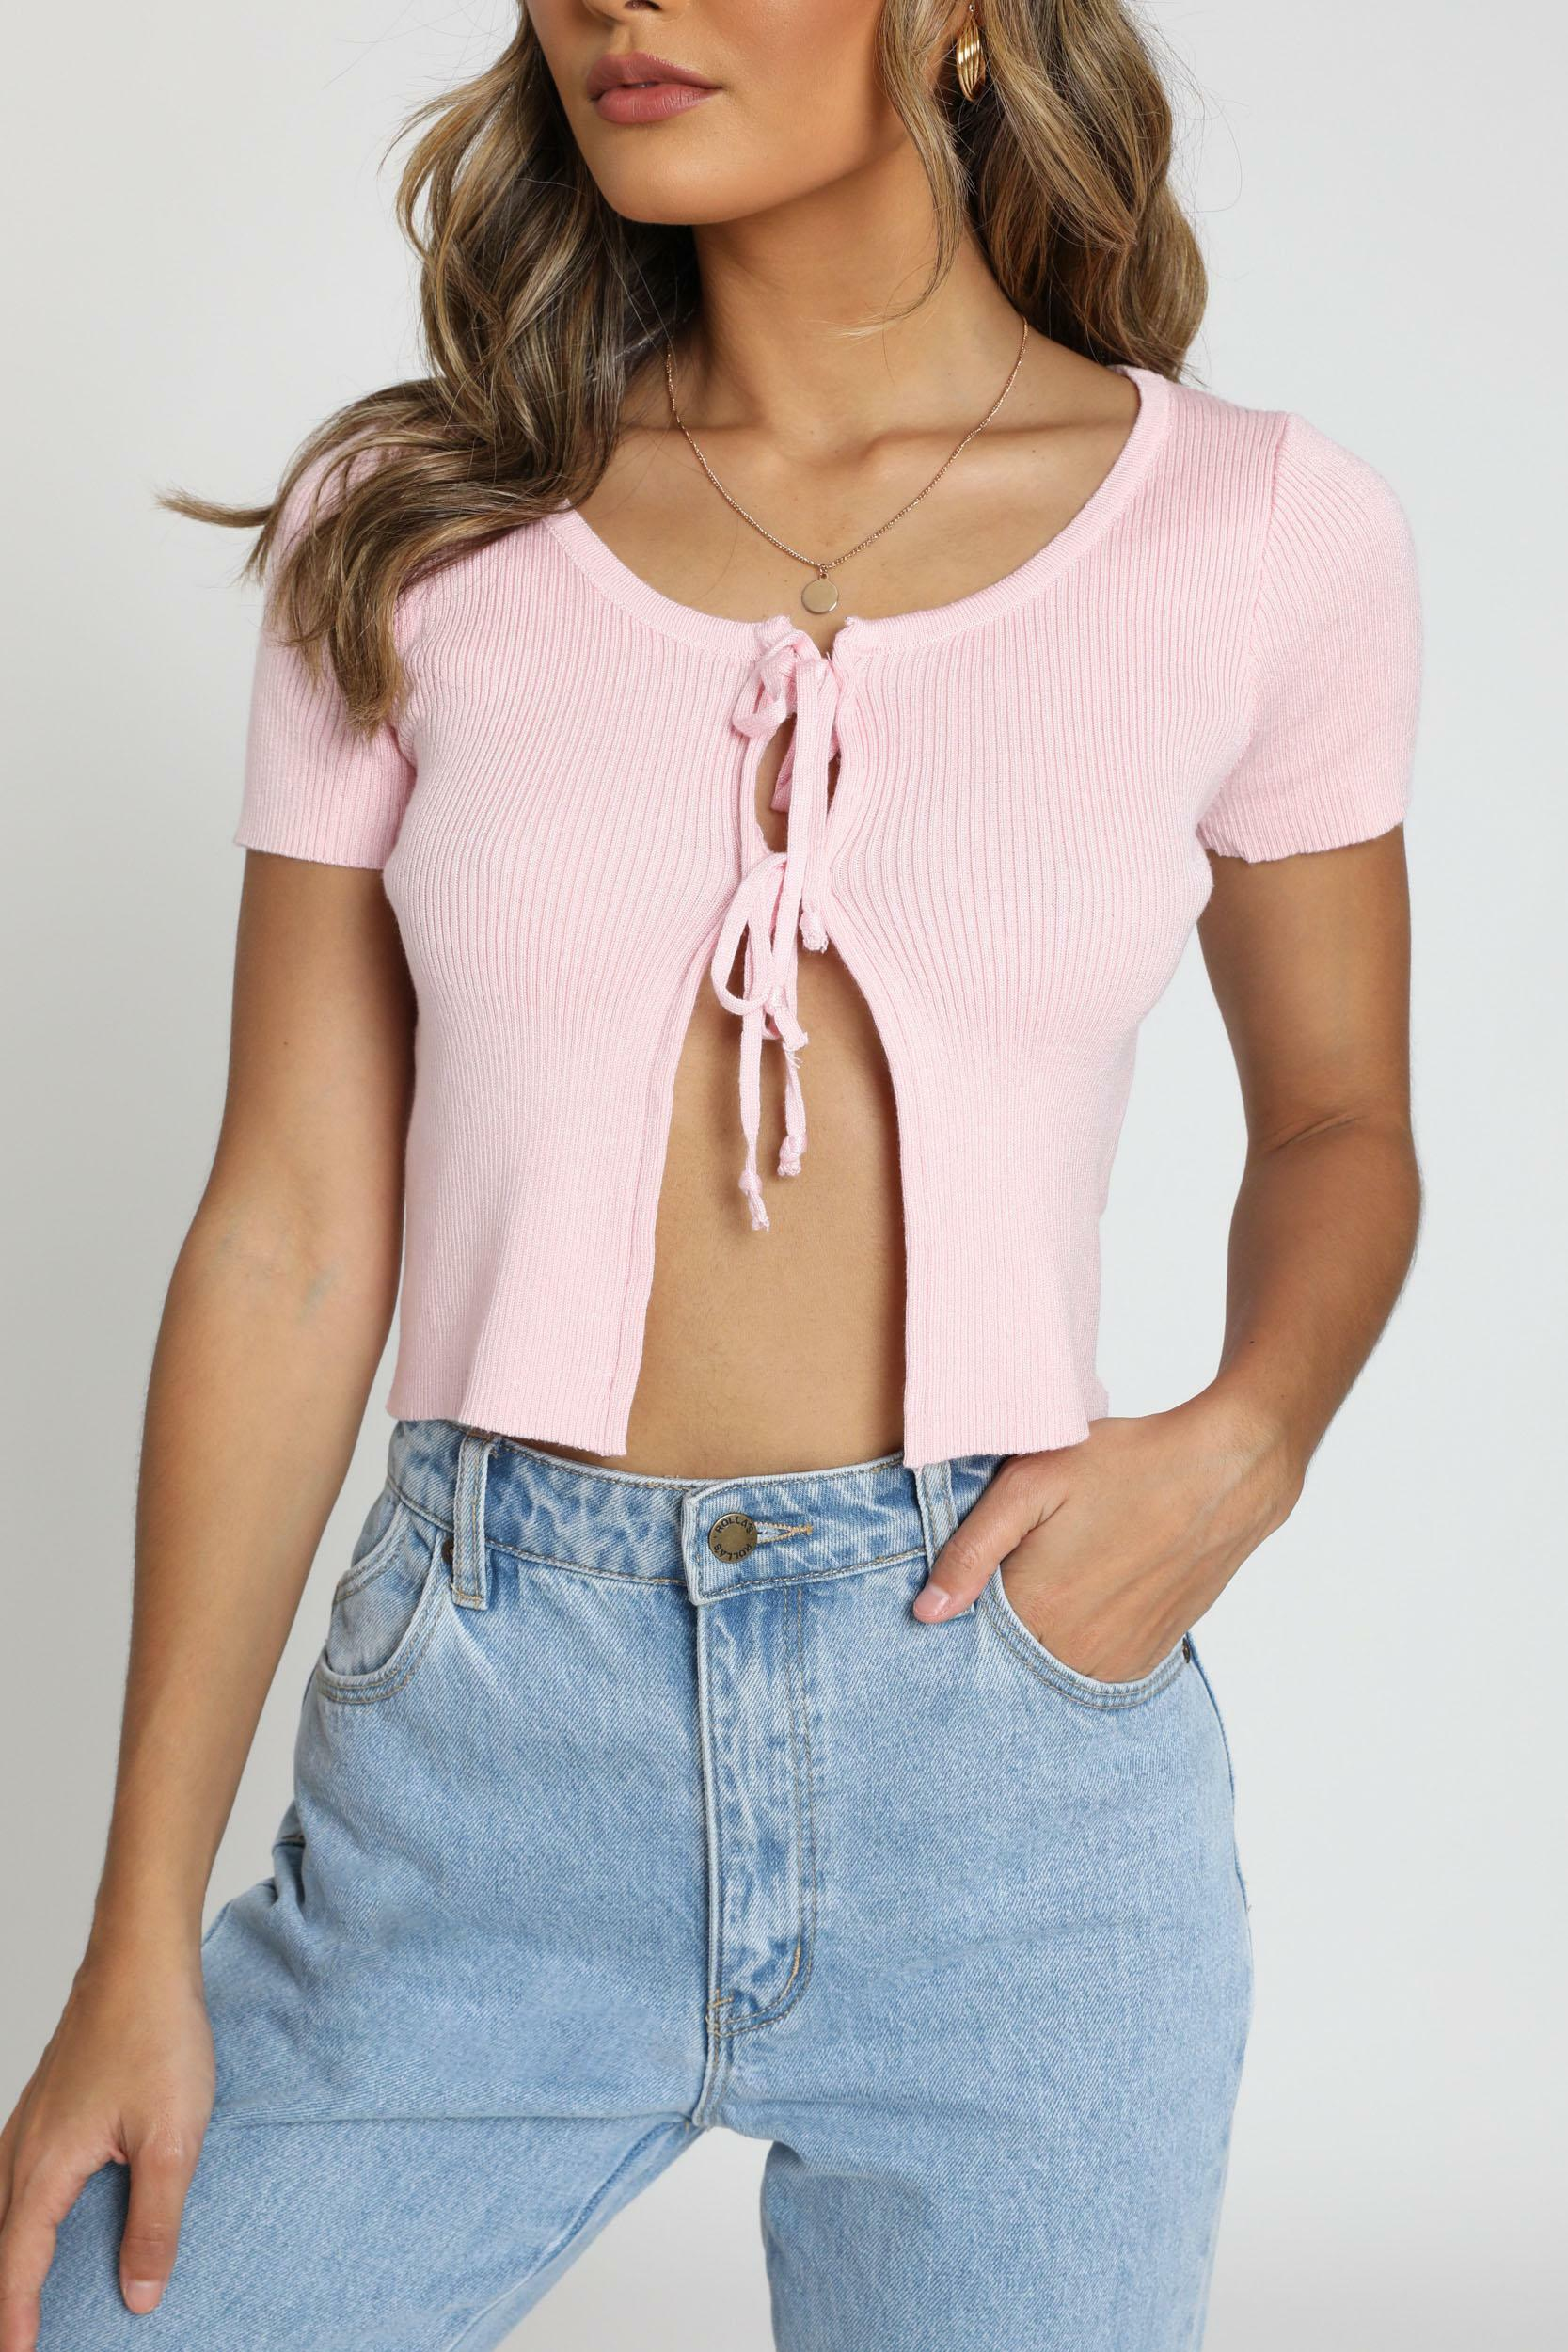 Thinking Aloud Top in pink - 12 (L), Pink, hi-res image number null